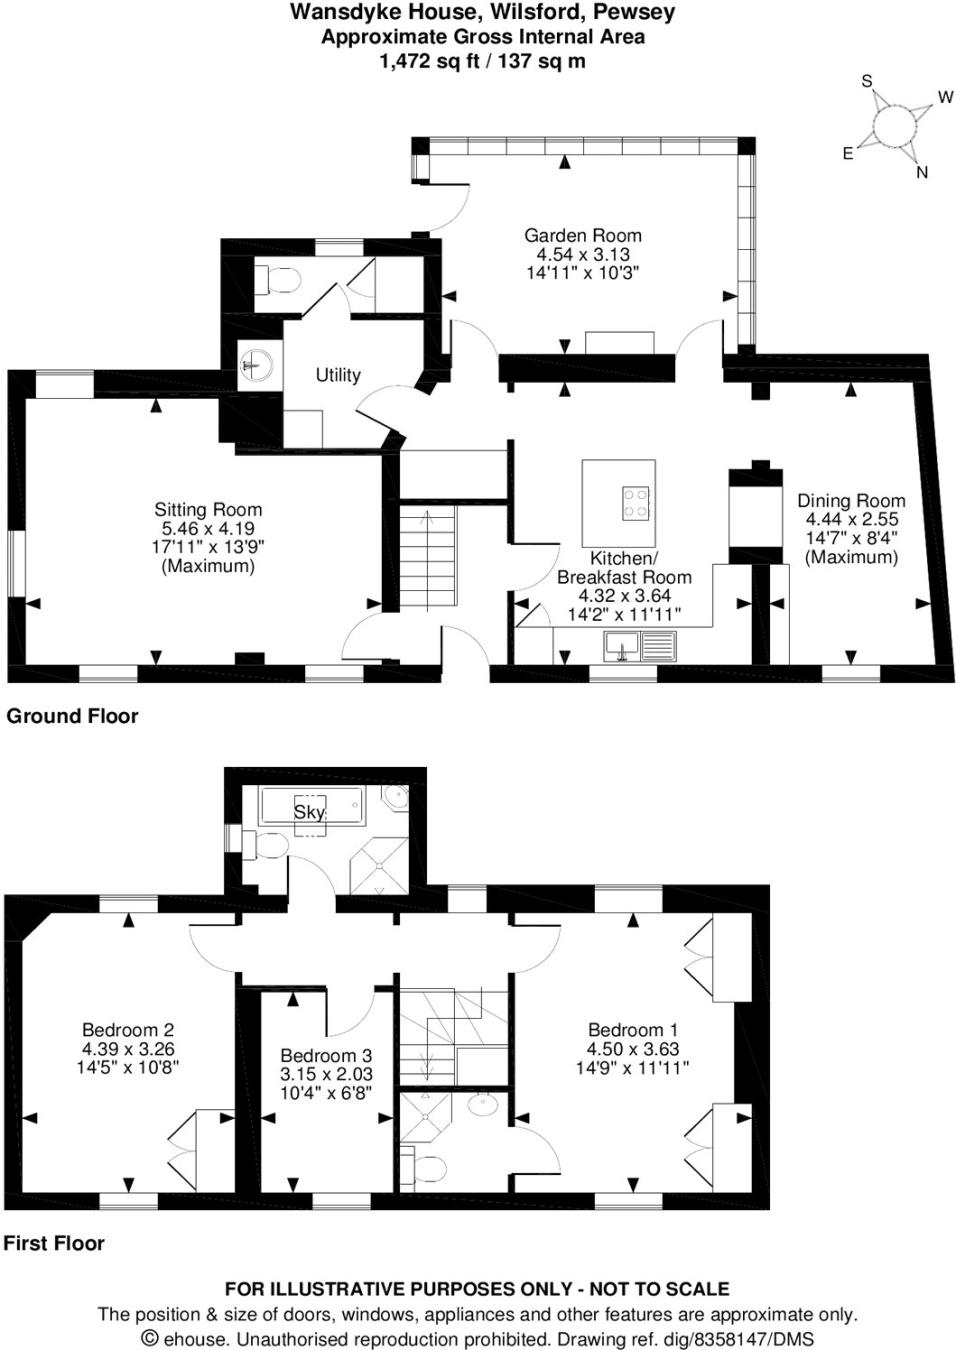 3 Bedroom House For Sale In Wilsford Pewsey Wiltshire Sn9 Average Cost Of Rewiring A Three Bed